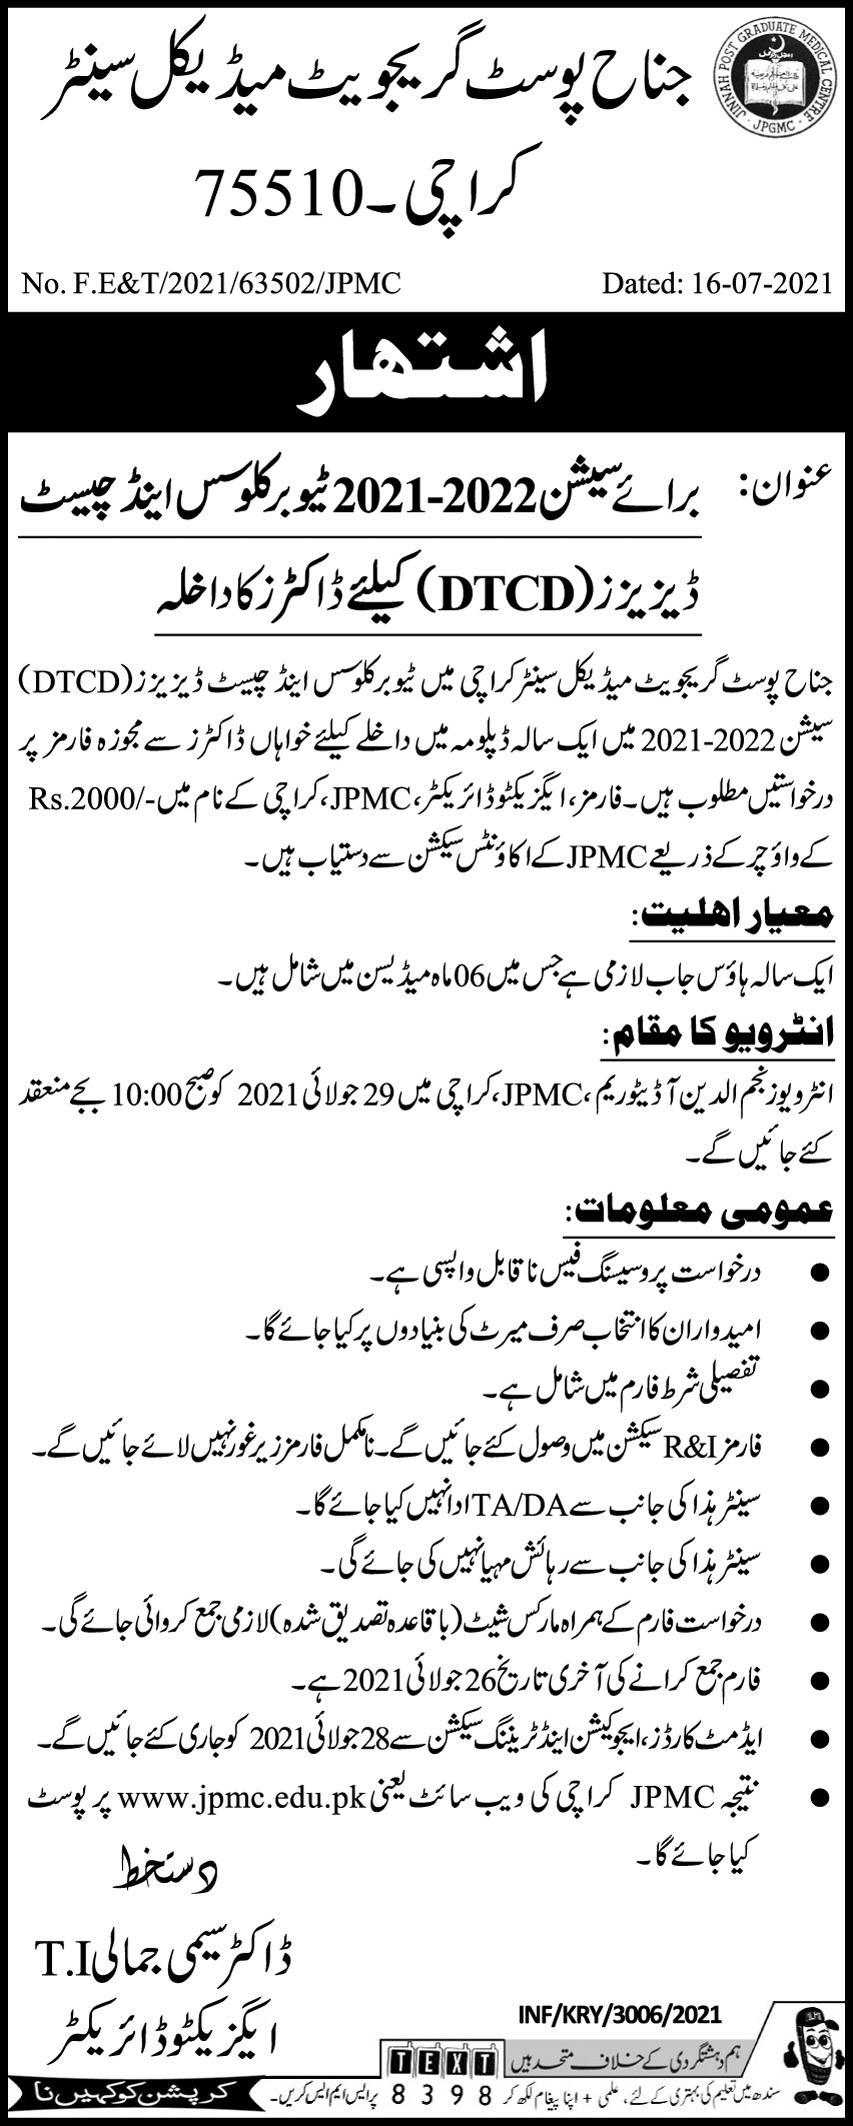 JPMC Doctors for Tuberculosis & Chest Diseases (DTCD) Admission 2021-2022